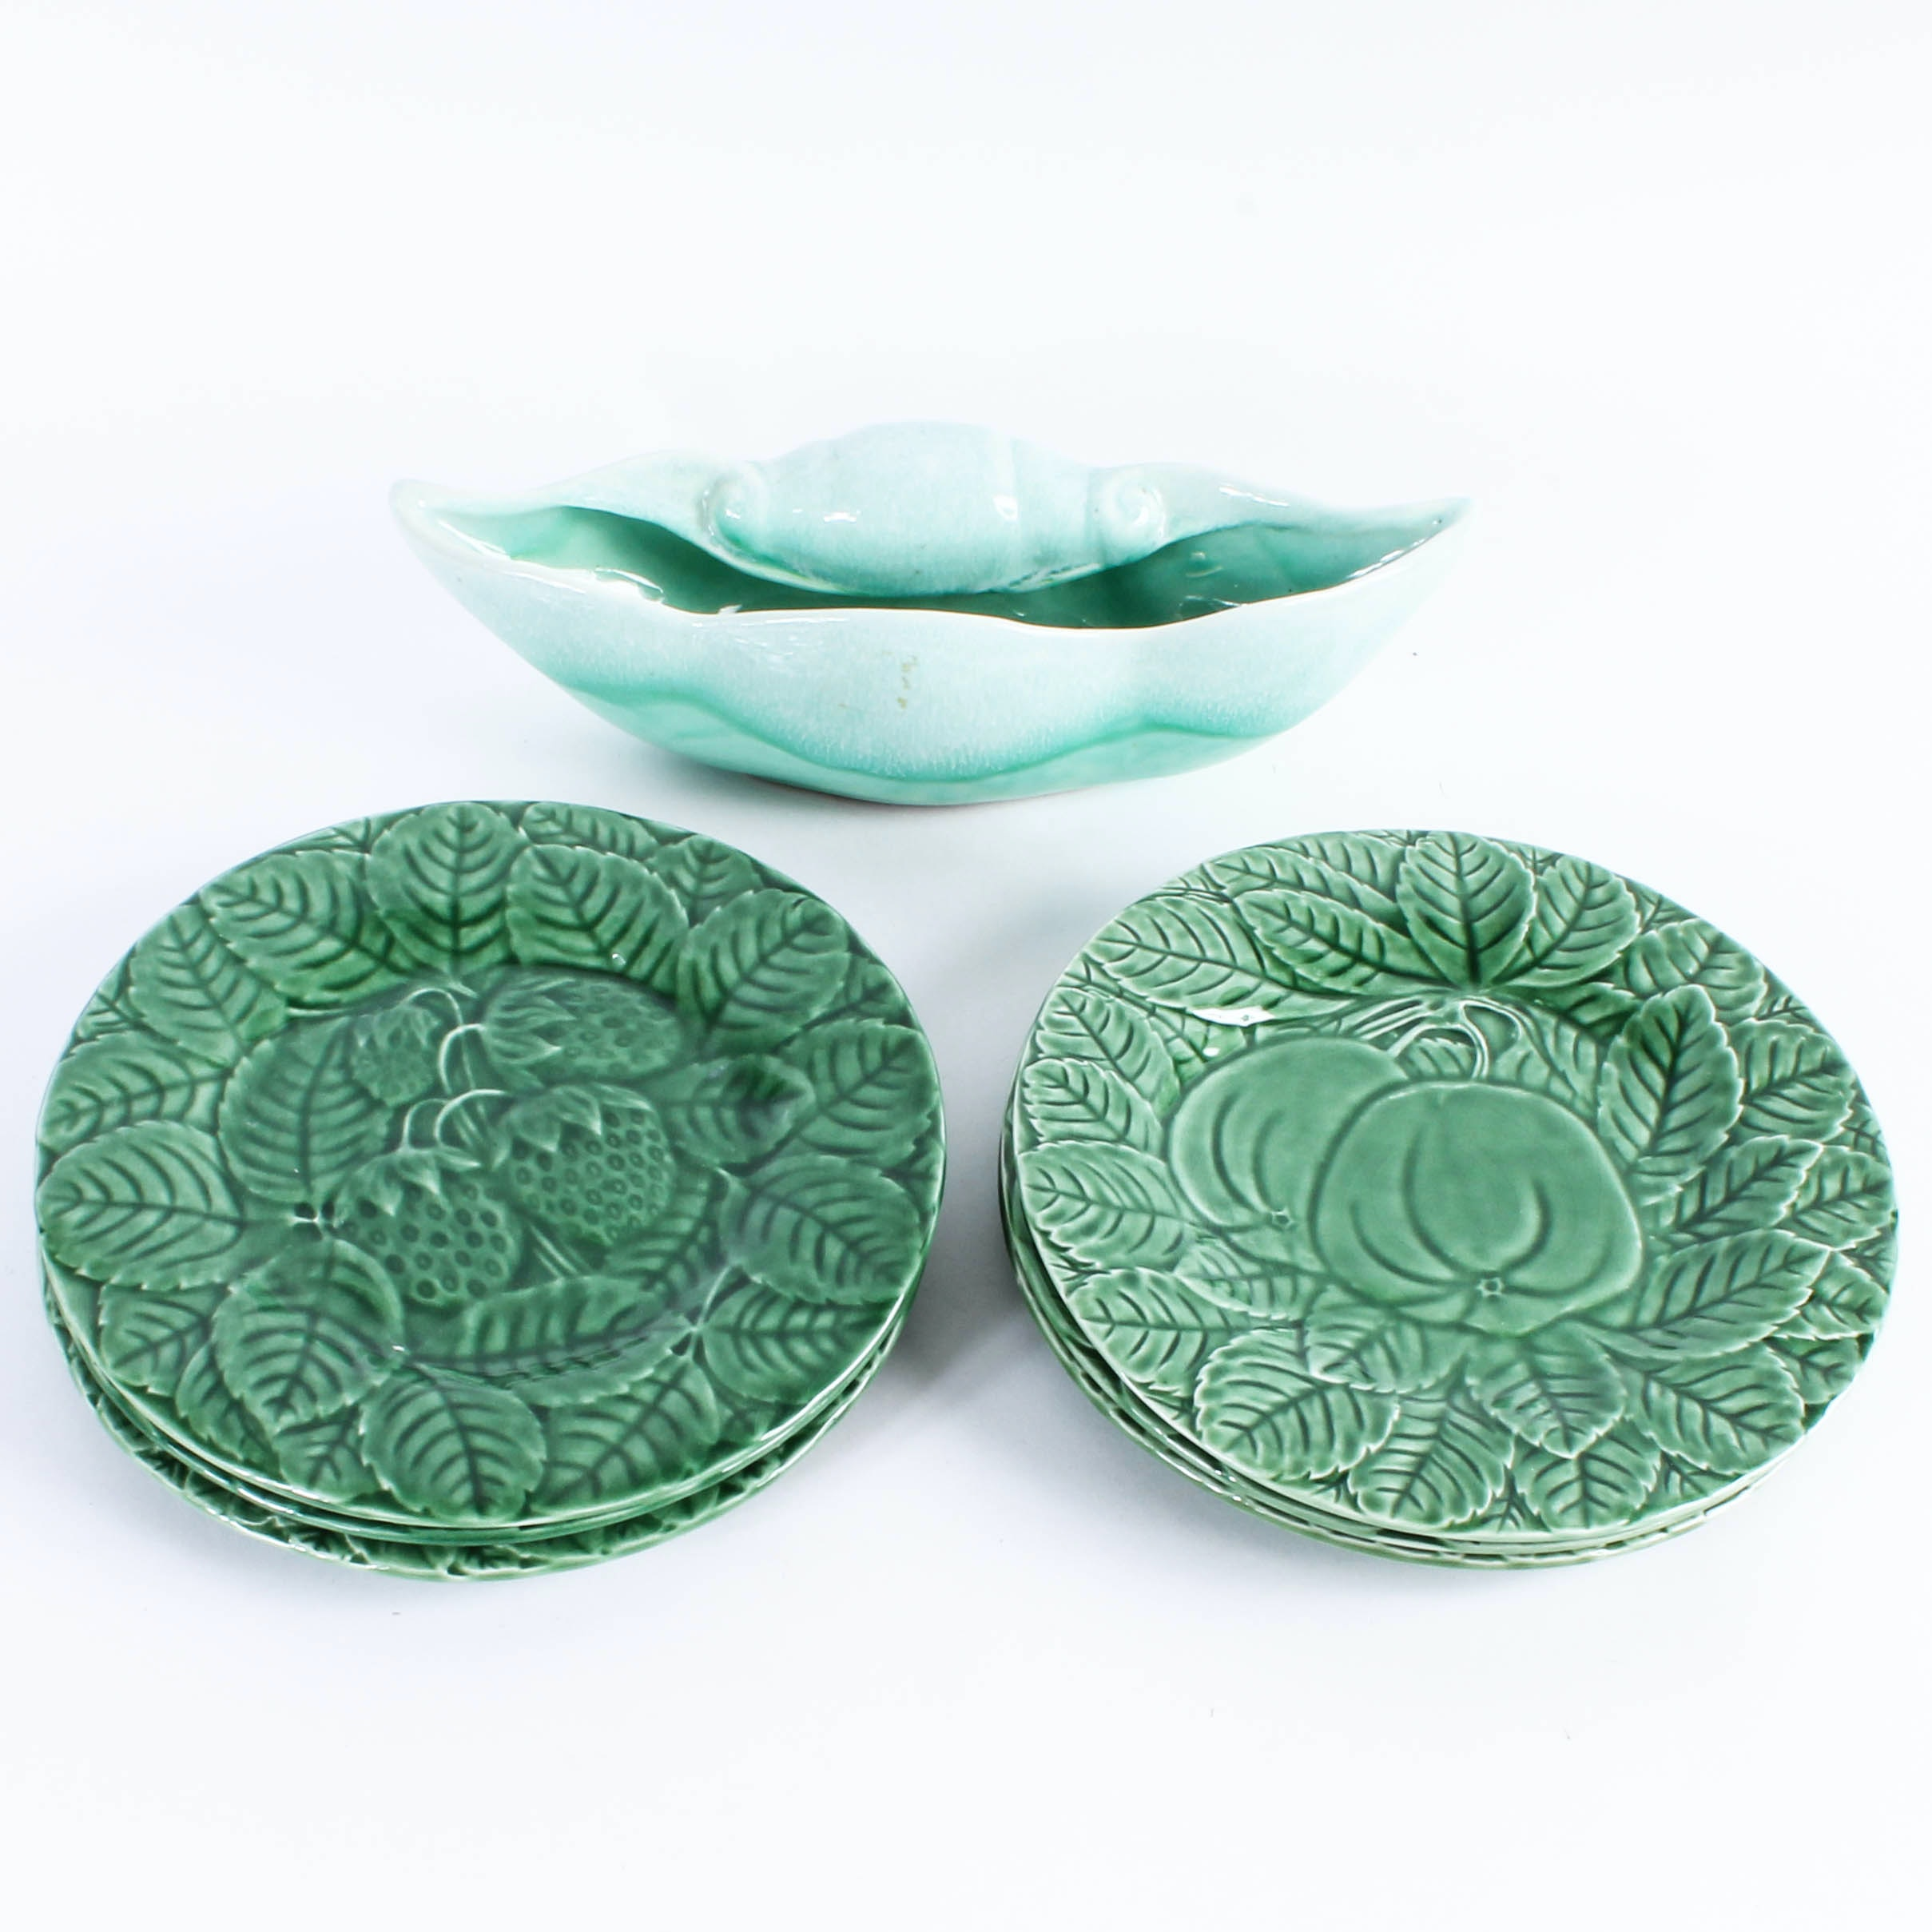 Green Pottery Including Set of Plates by Bordallo Pinheiro